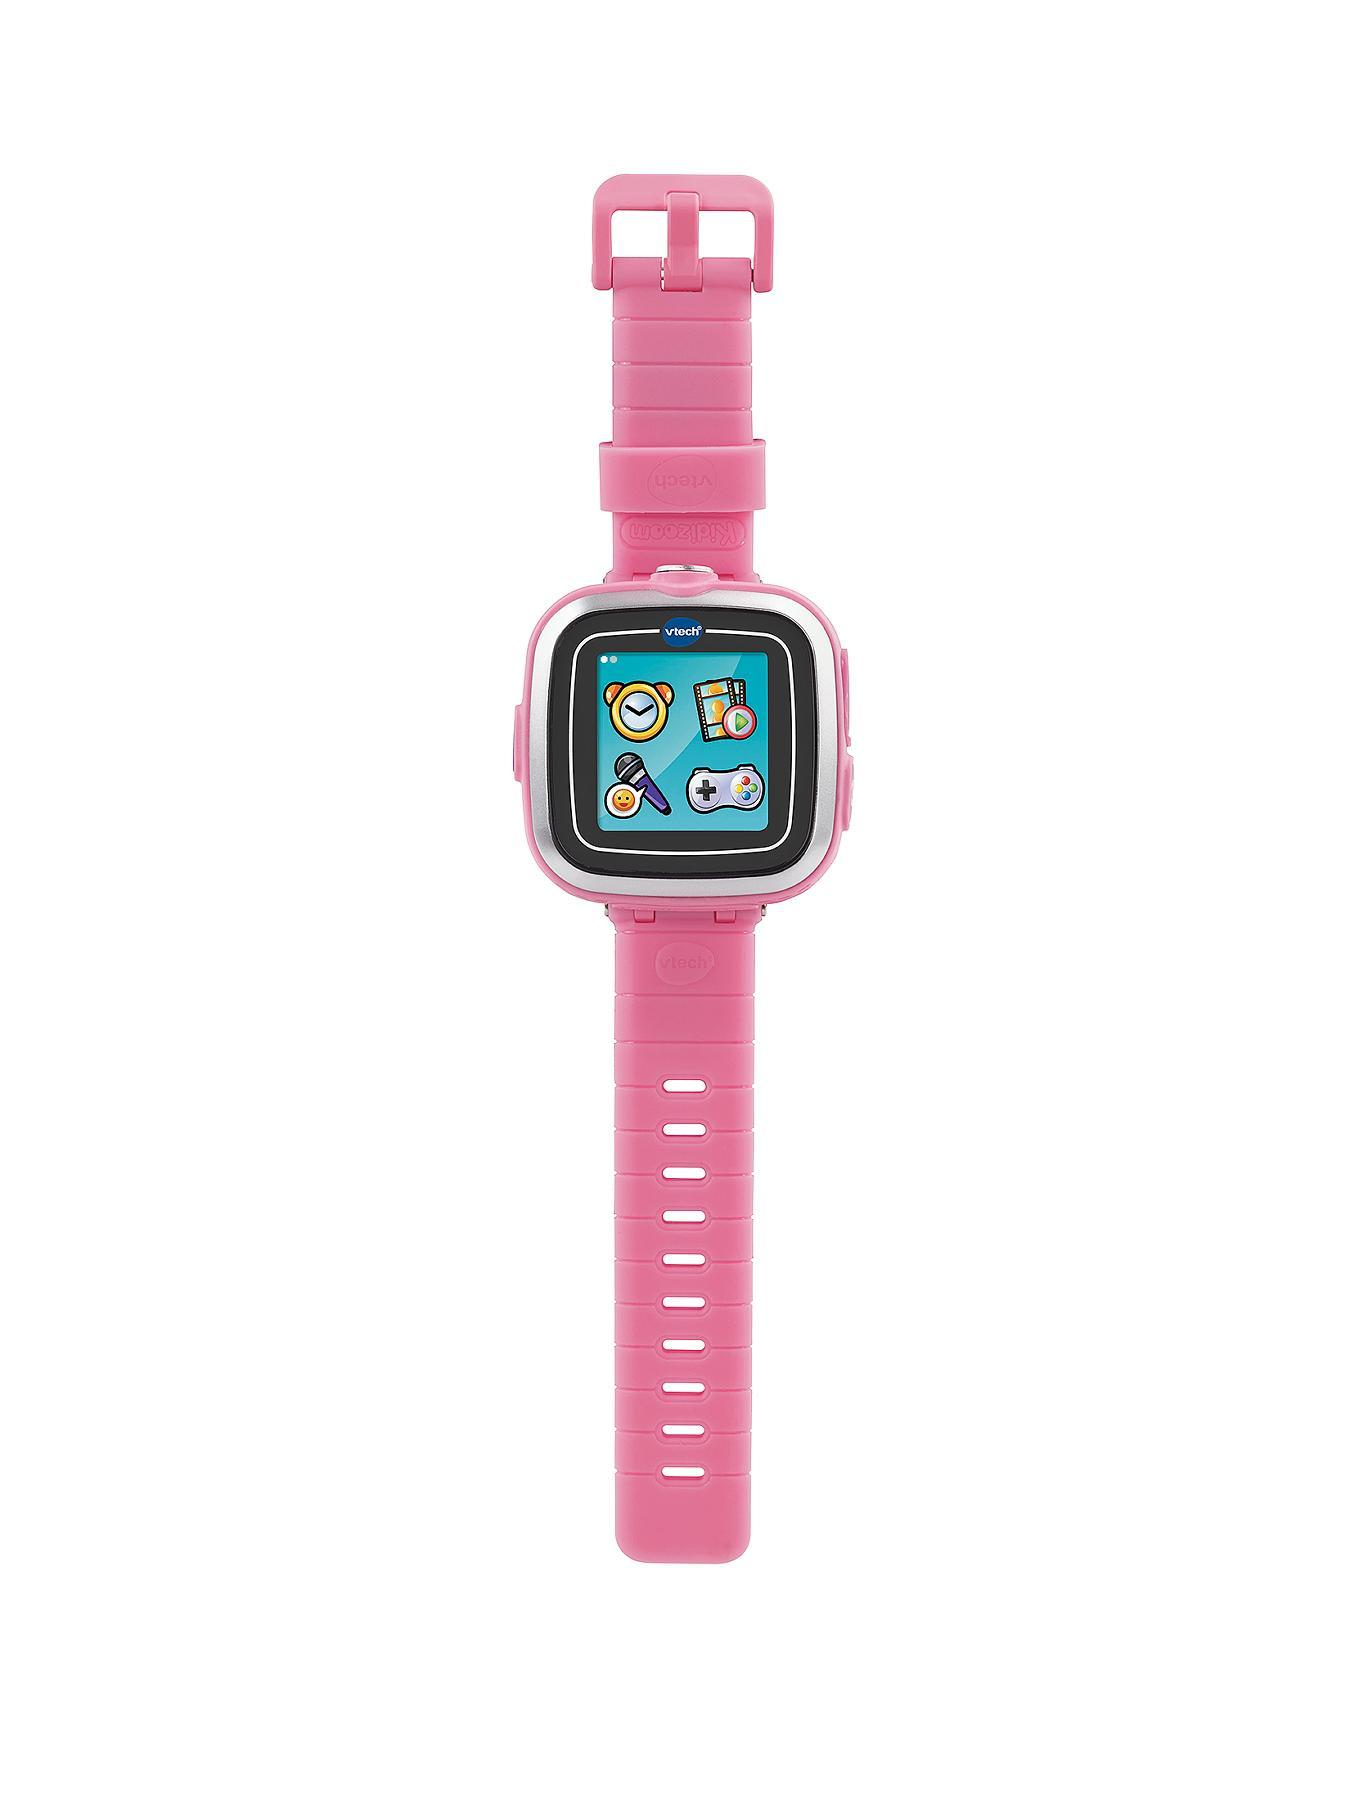 VTech Kidizoom Smart Watch - Pink